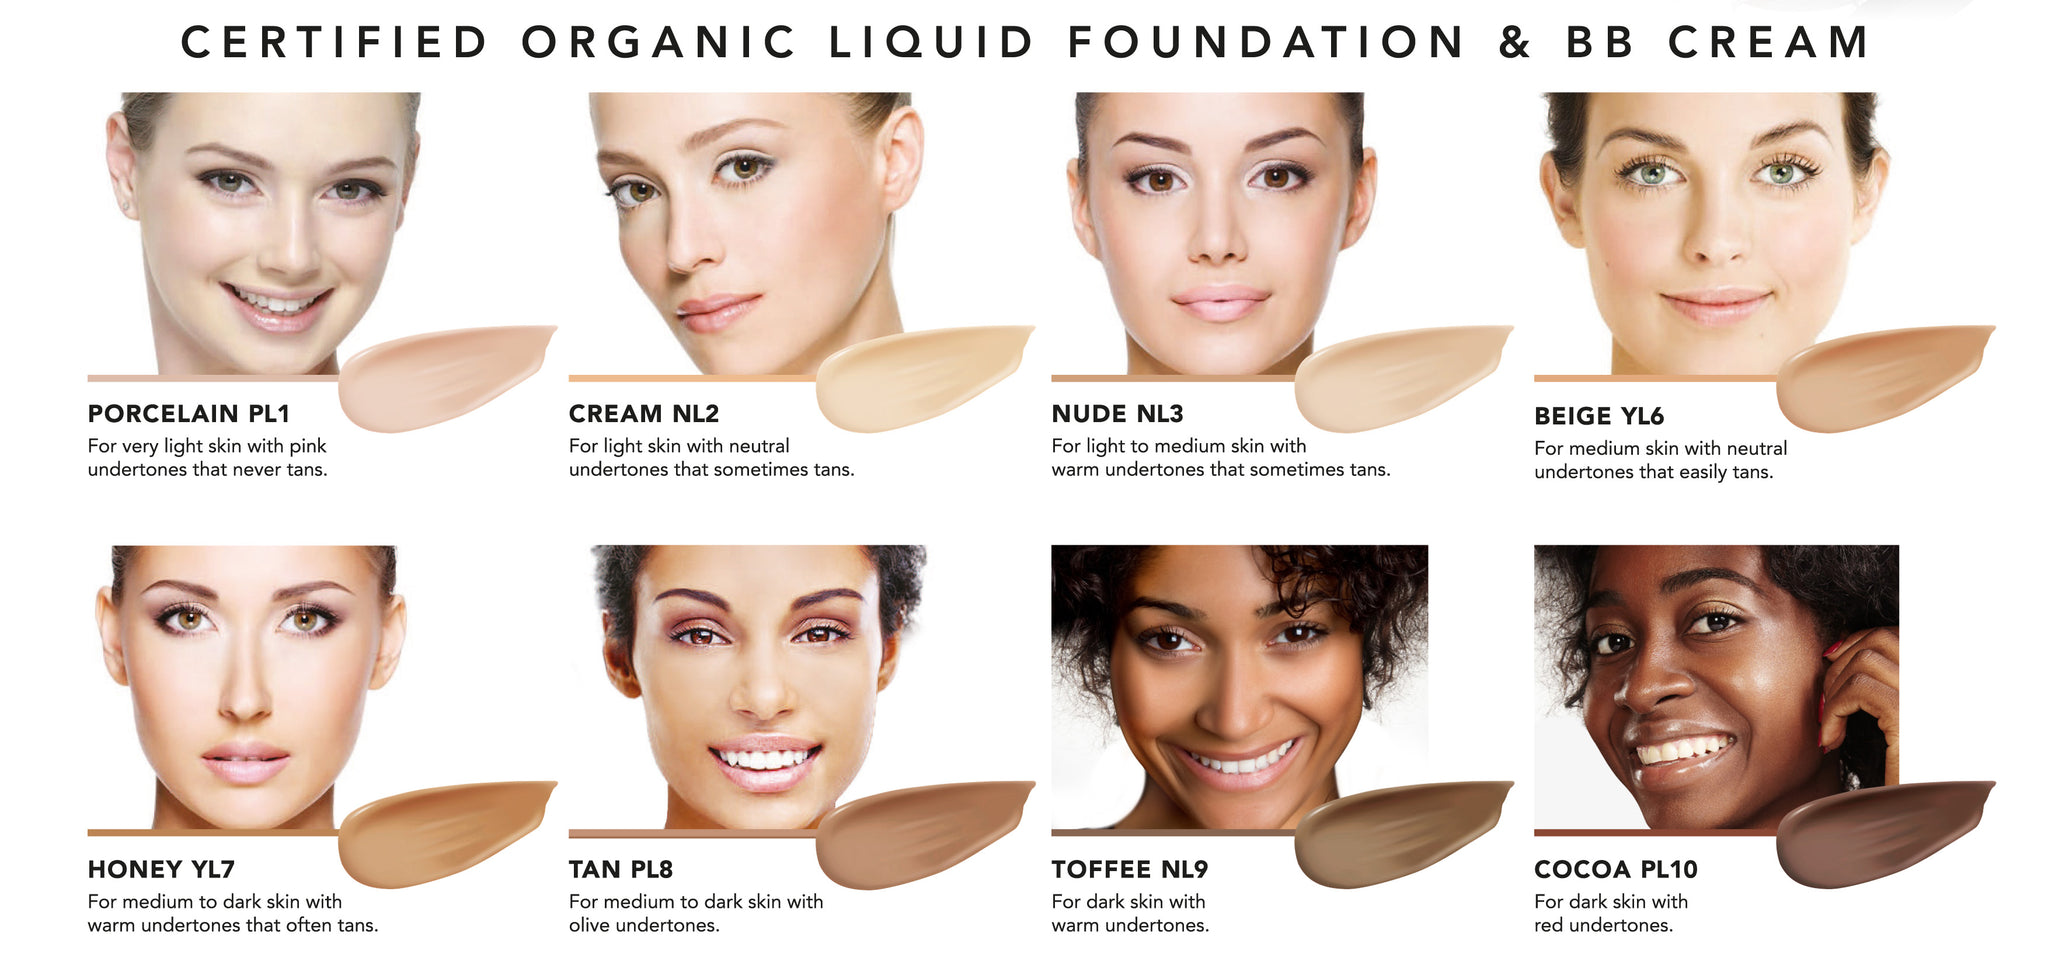 INIKA Organic Shade Definer - BB CREAM - Certified Organic Liquid foundation with hyaluronic acid